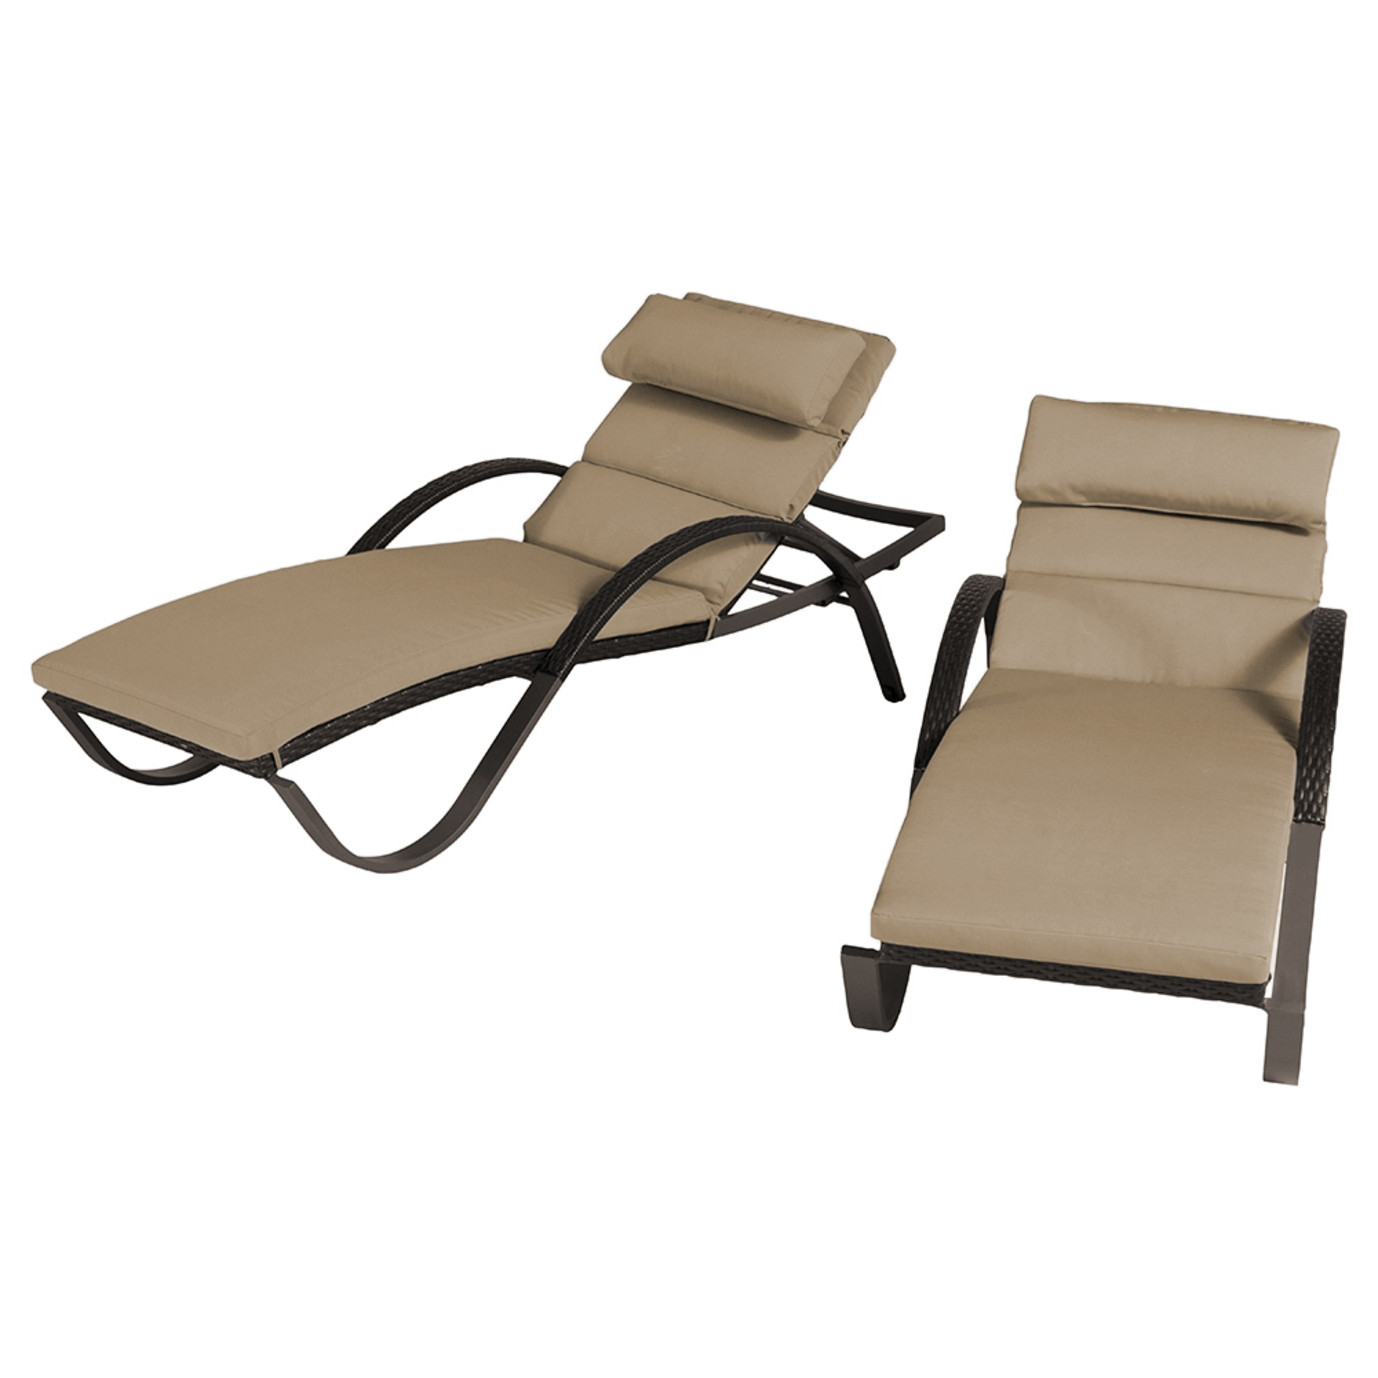 Deco Chaise Lounges with Cushions - Delano Beige